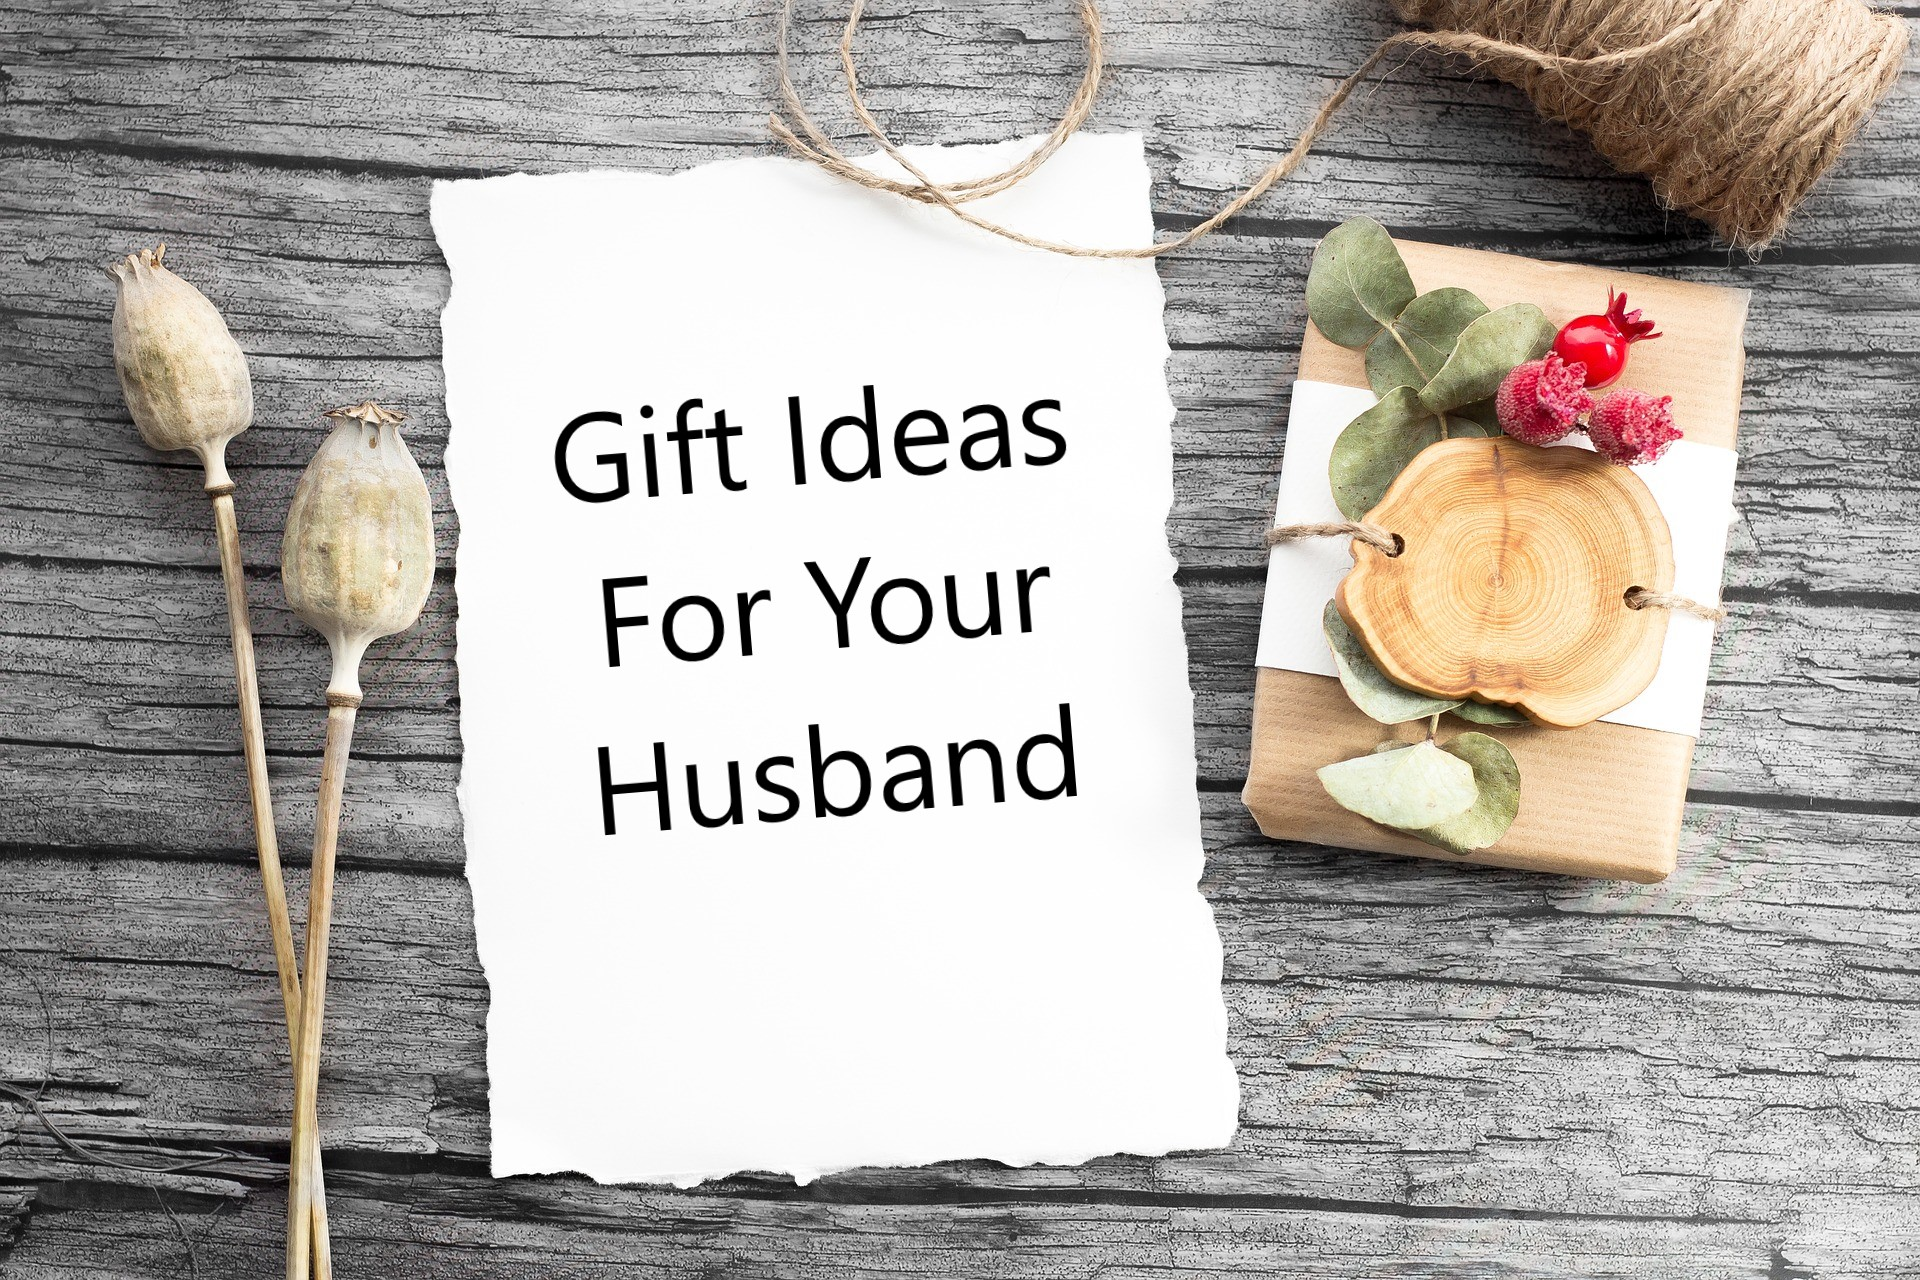 Husband To Be Gift: Great Gift Ideas For Your Husband!